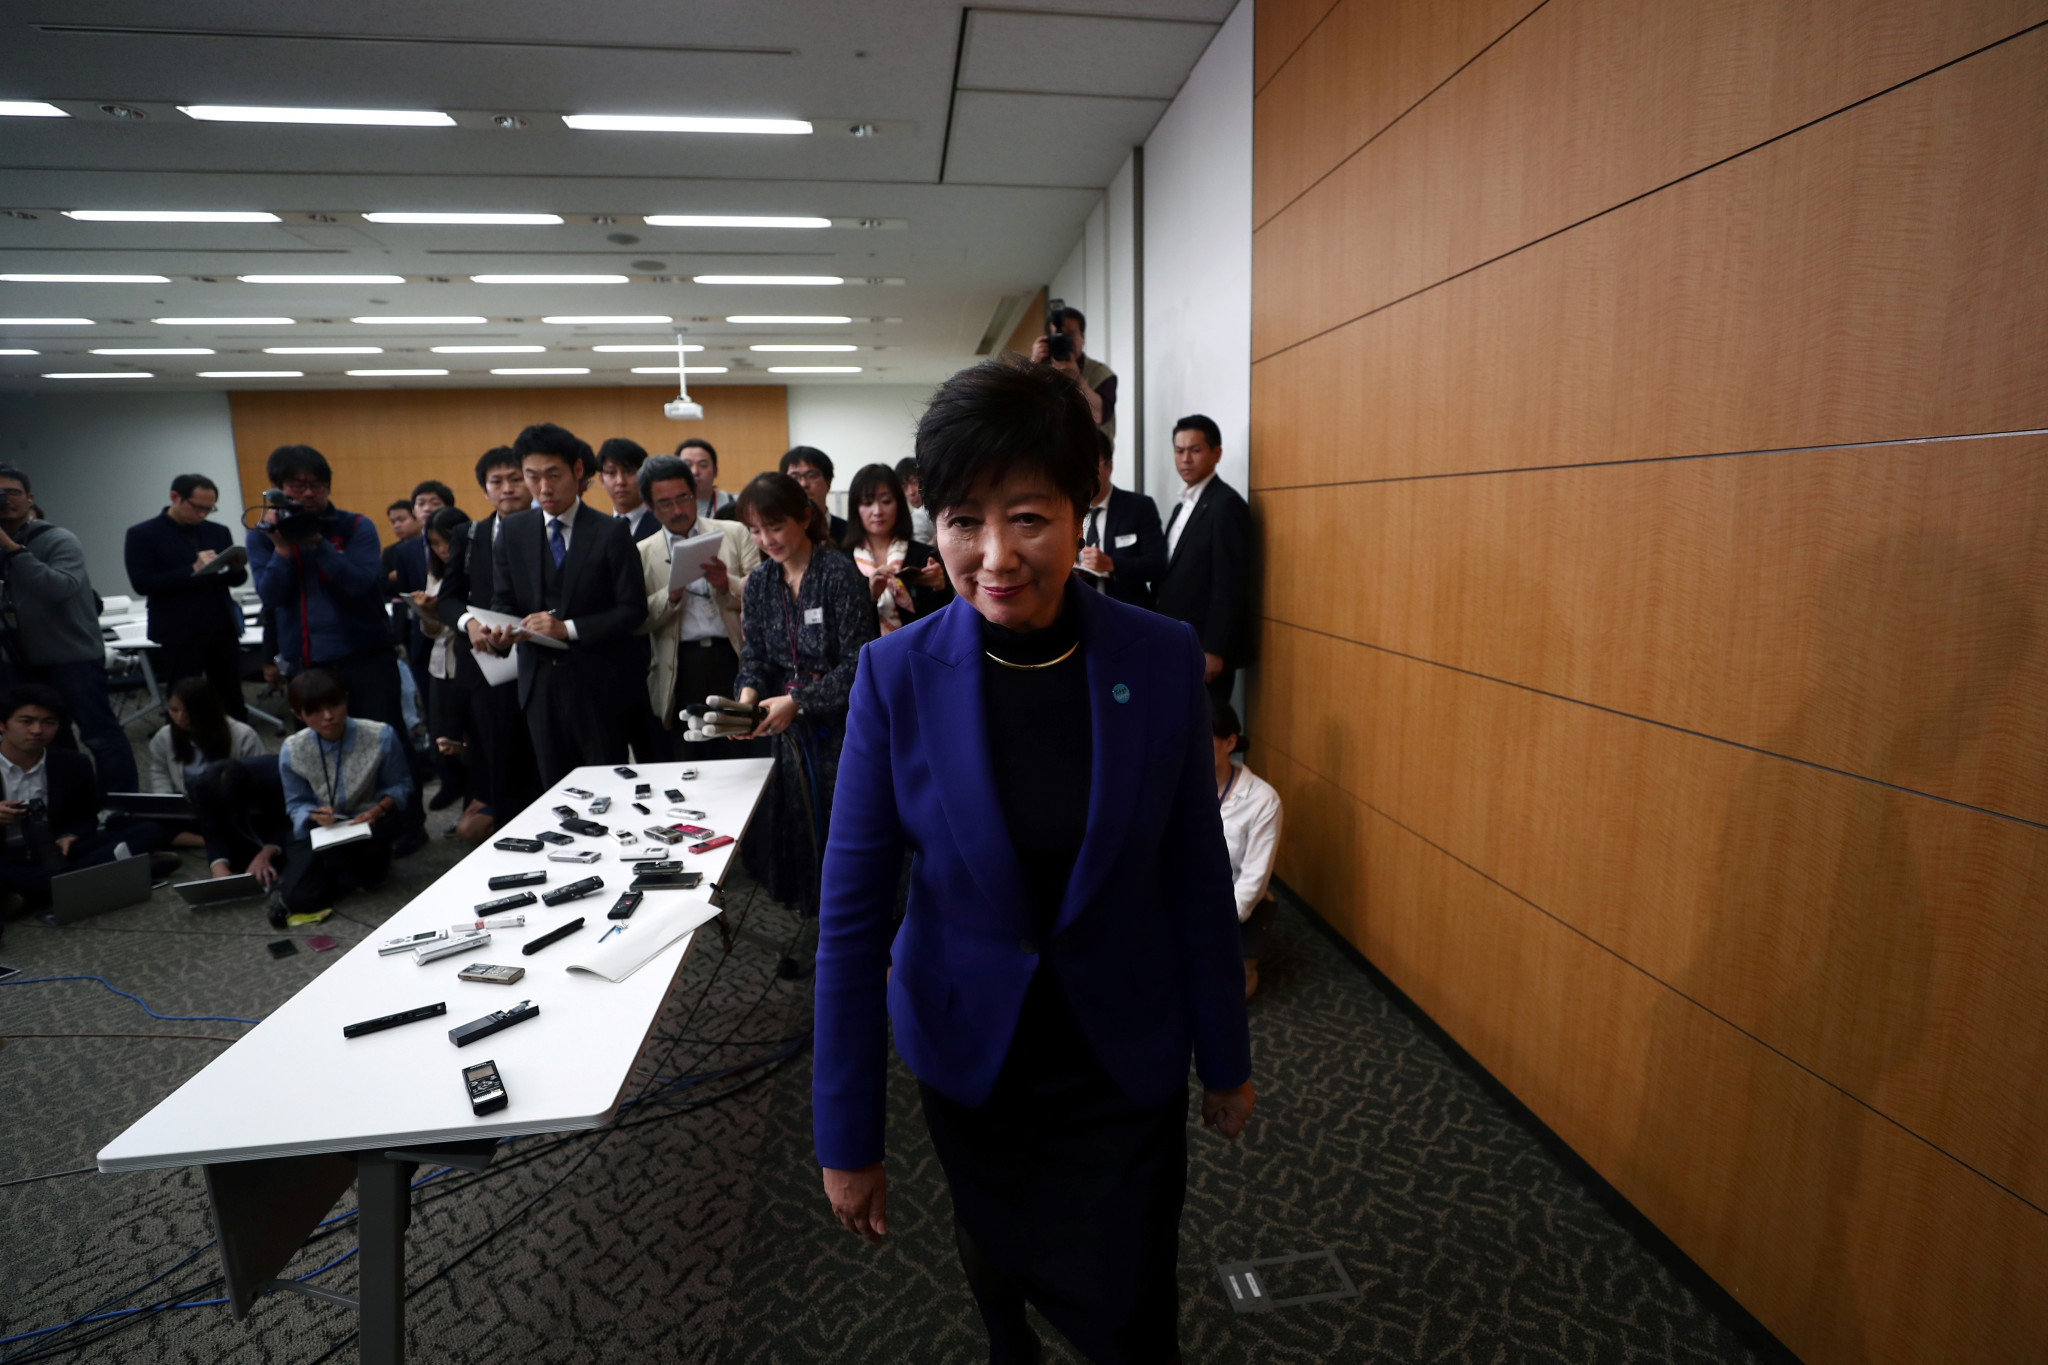 Tokyo Governor Yuriko Koike criticised the IOC for their lack of consultation over moving the events to Sapporo ©Getty Images